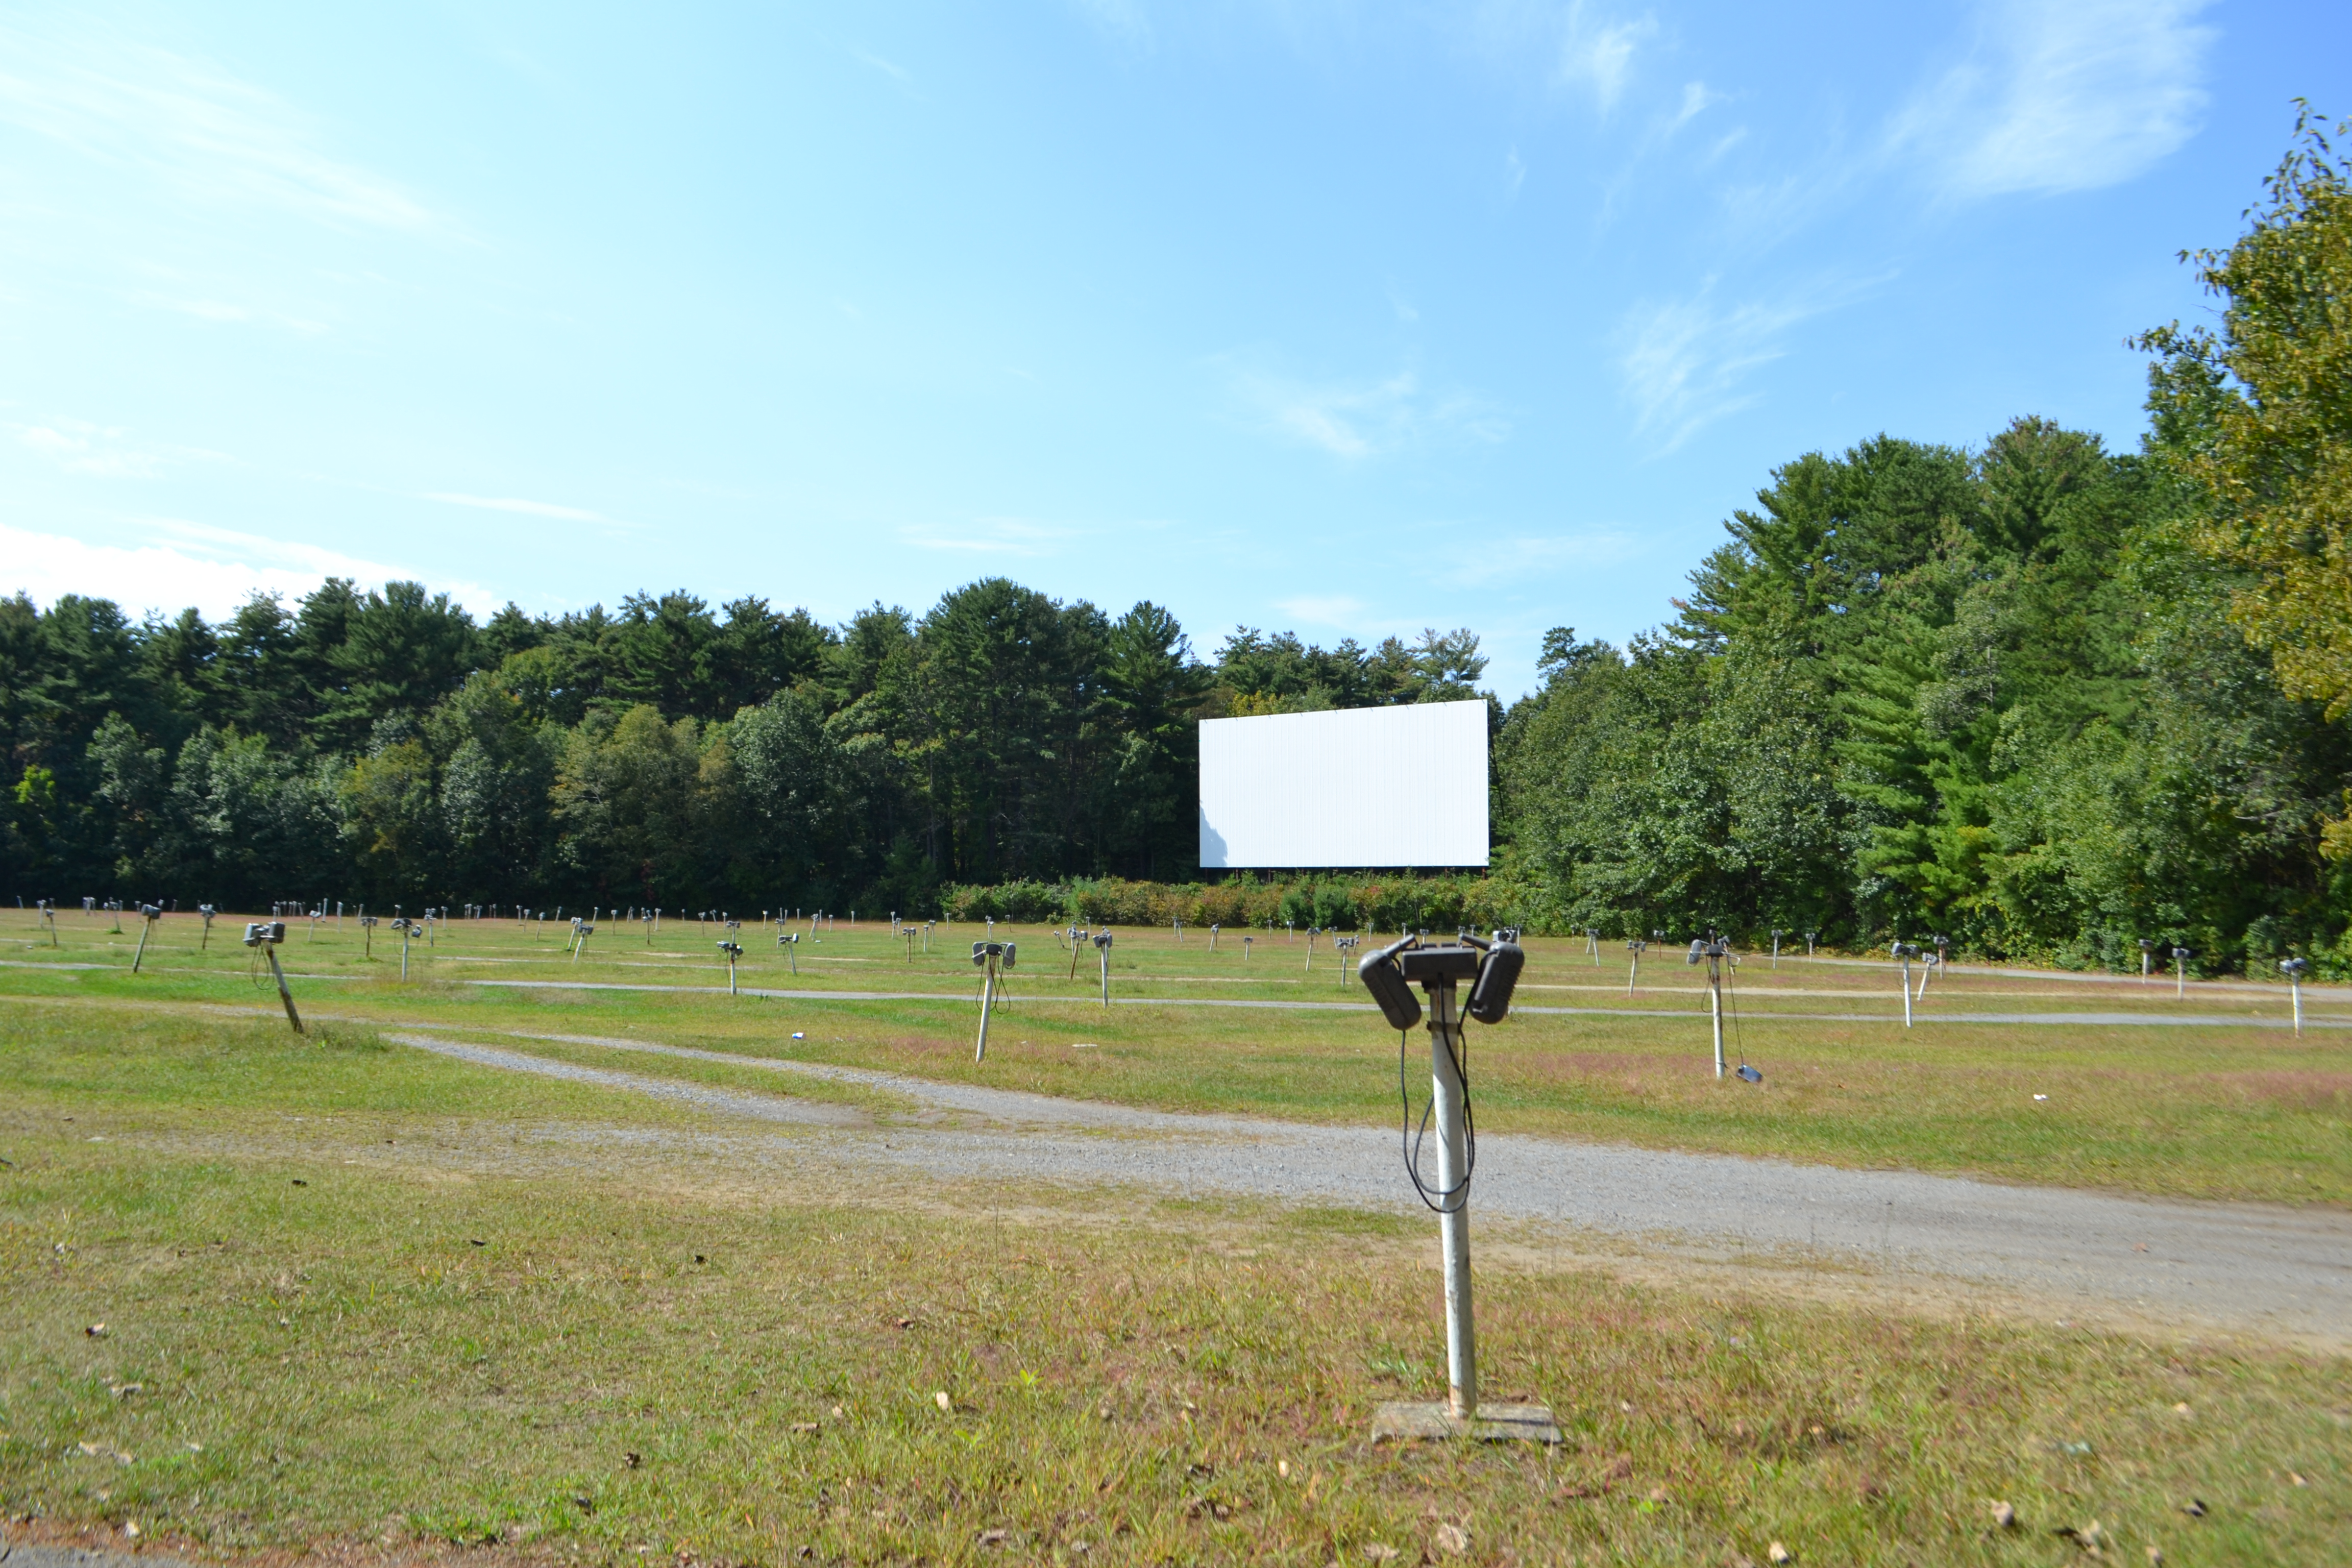 Glen Drive-In Theater